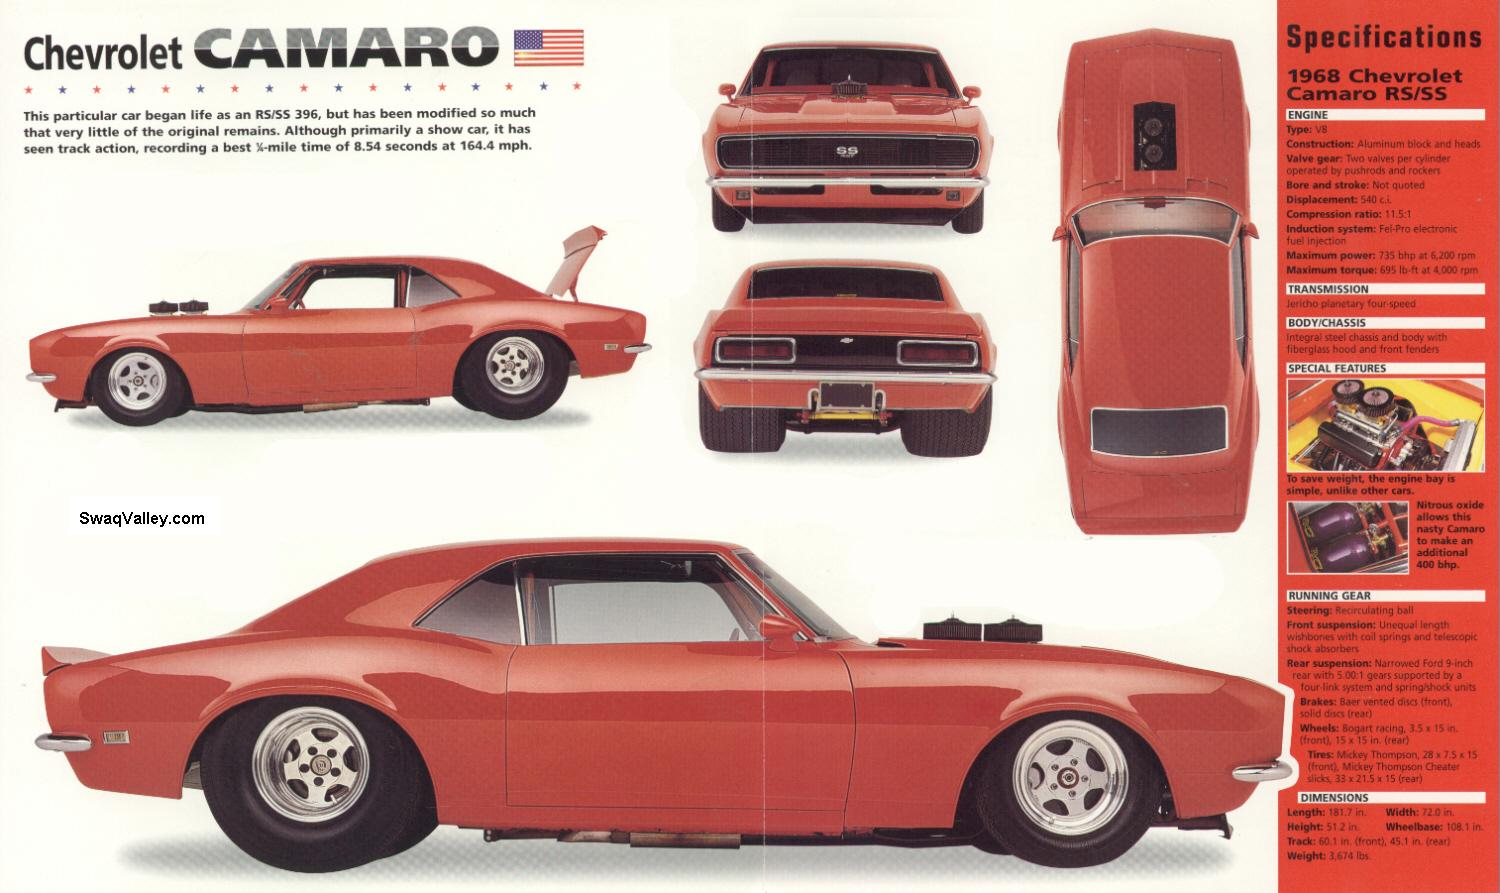 Classic Car Information 1968 Camaro Specifications And Restoration Chevy Project Chevrolet Rs Ss Spects At Brocure Or Leaflet